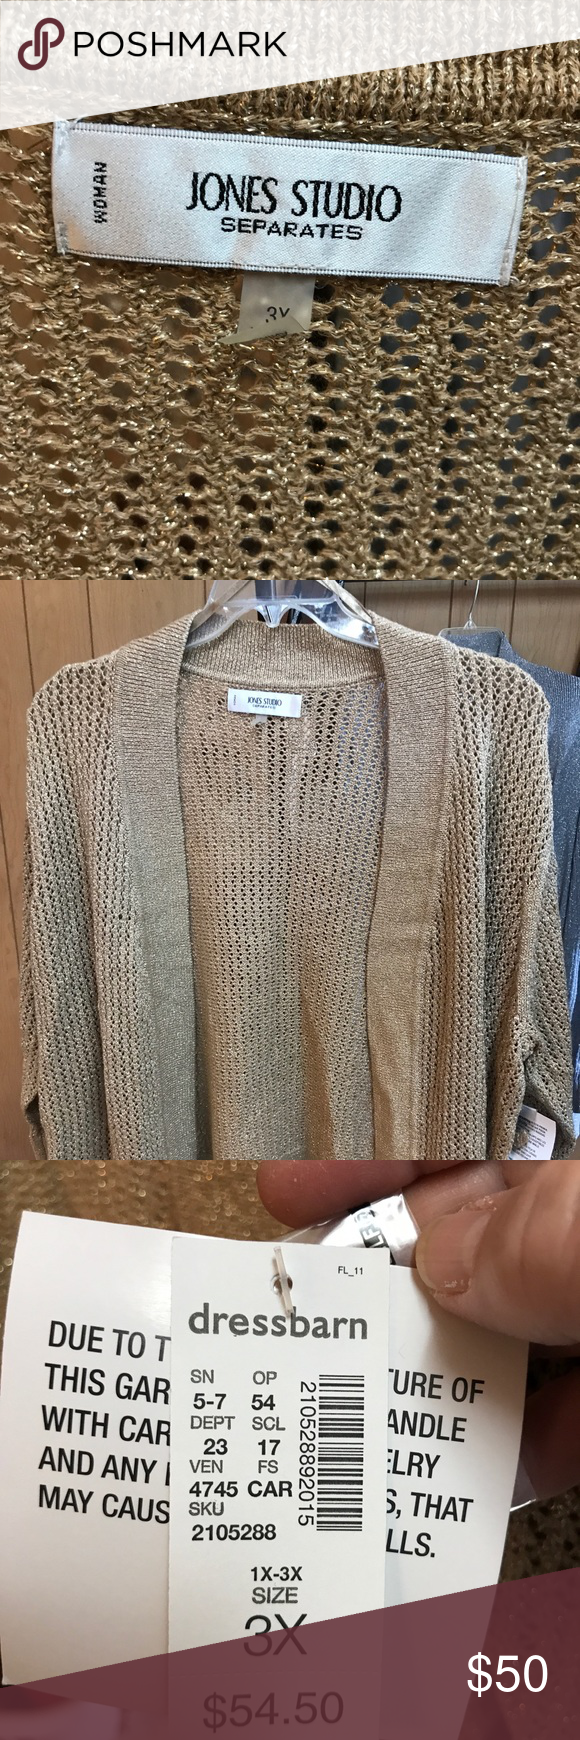 Gold sweater perfect for chilly nights out Great for dressing up ...